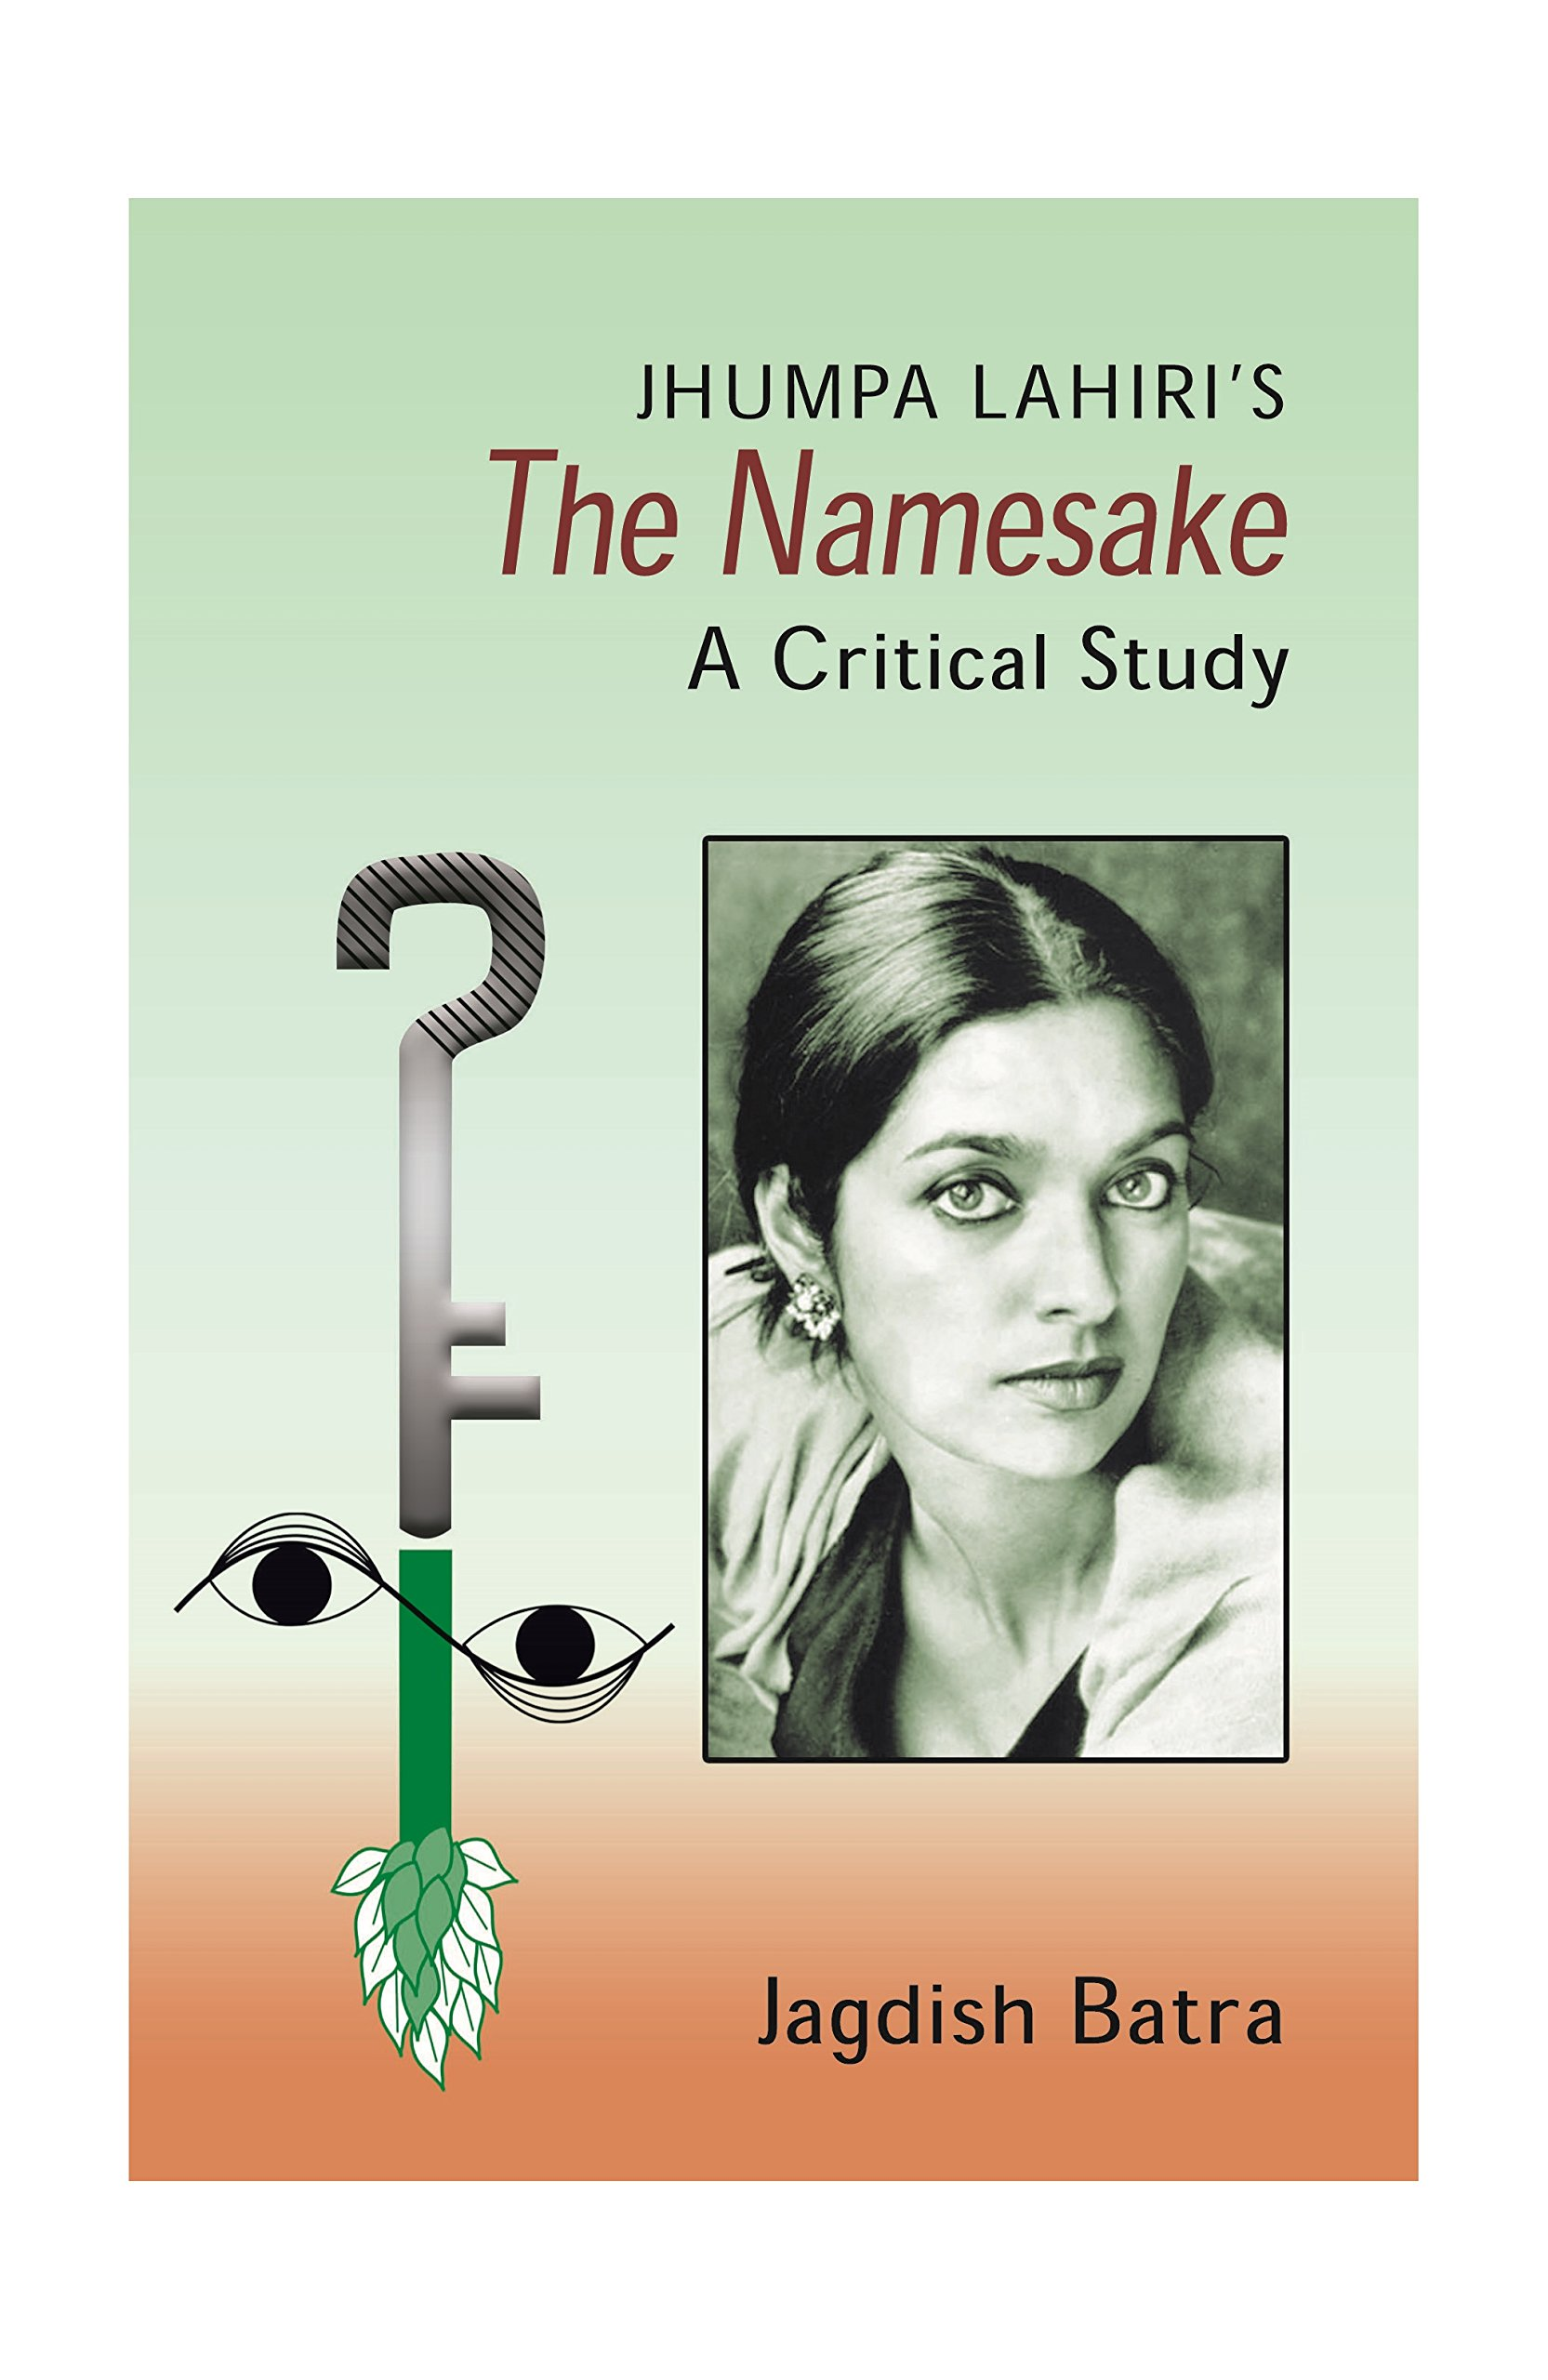 thesis on jhumpa lahiri Free essay: over the course of the novel, the namesake, by jhumpa lahiri, gogol is constantly moving, and by the time he is in his late twenties, he has.